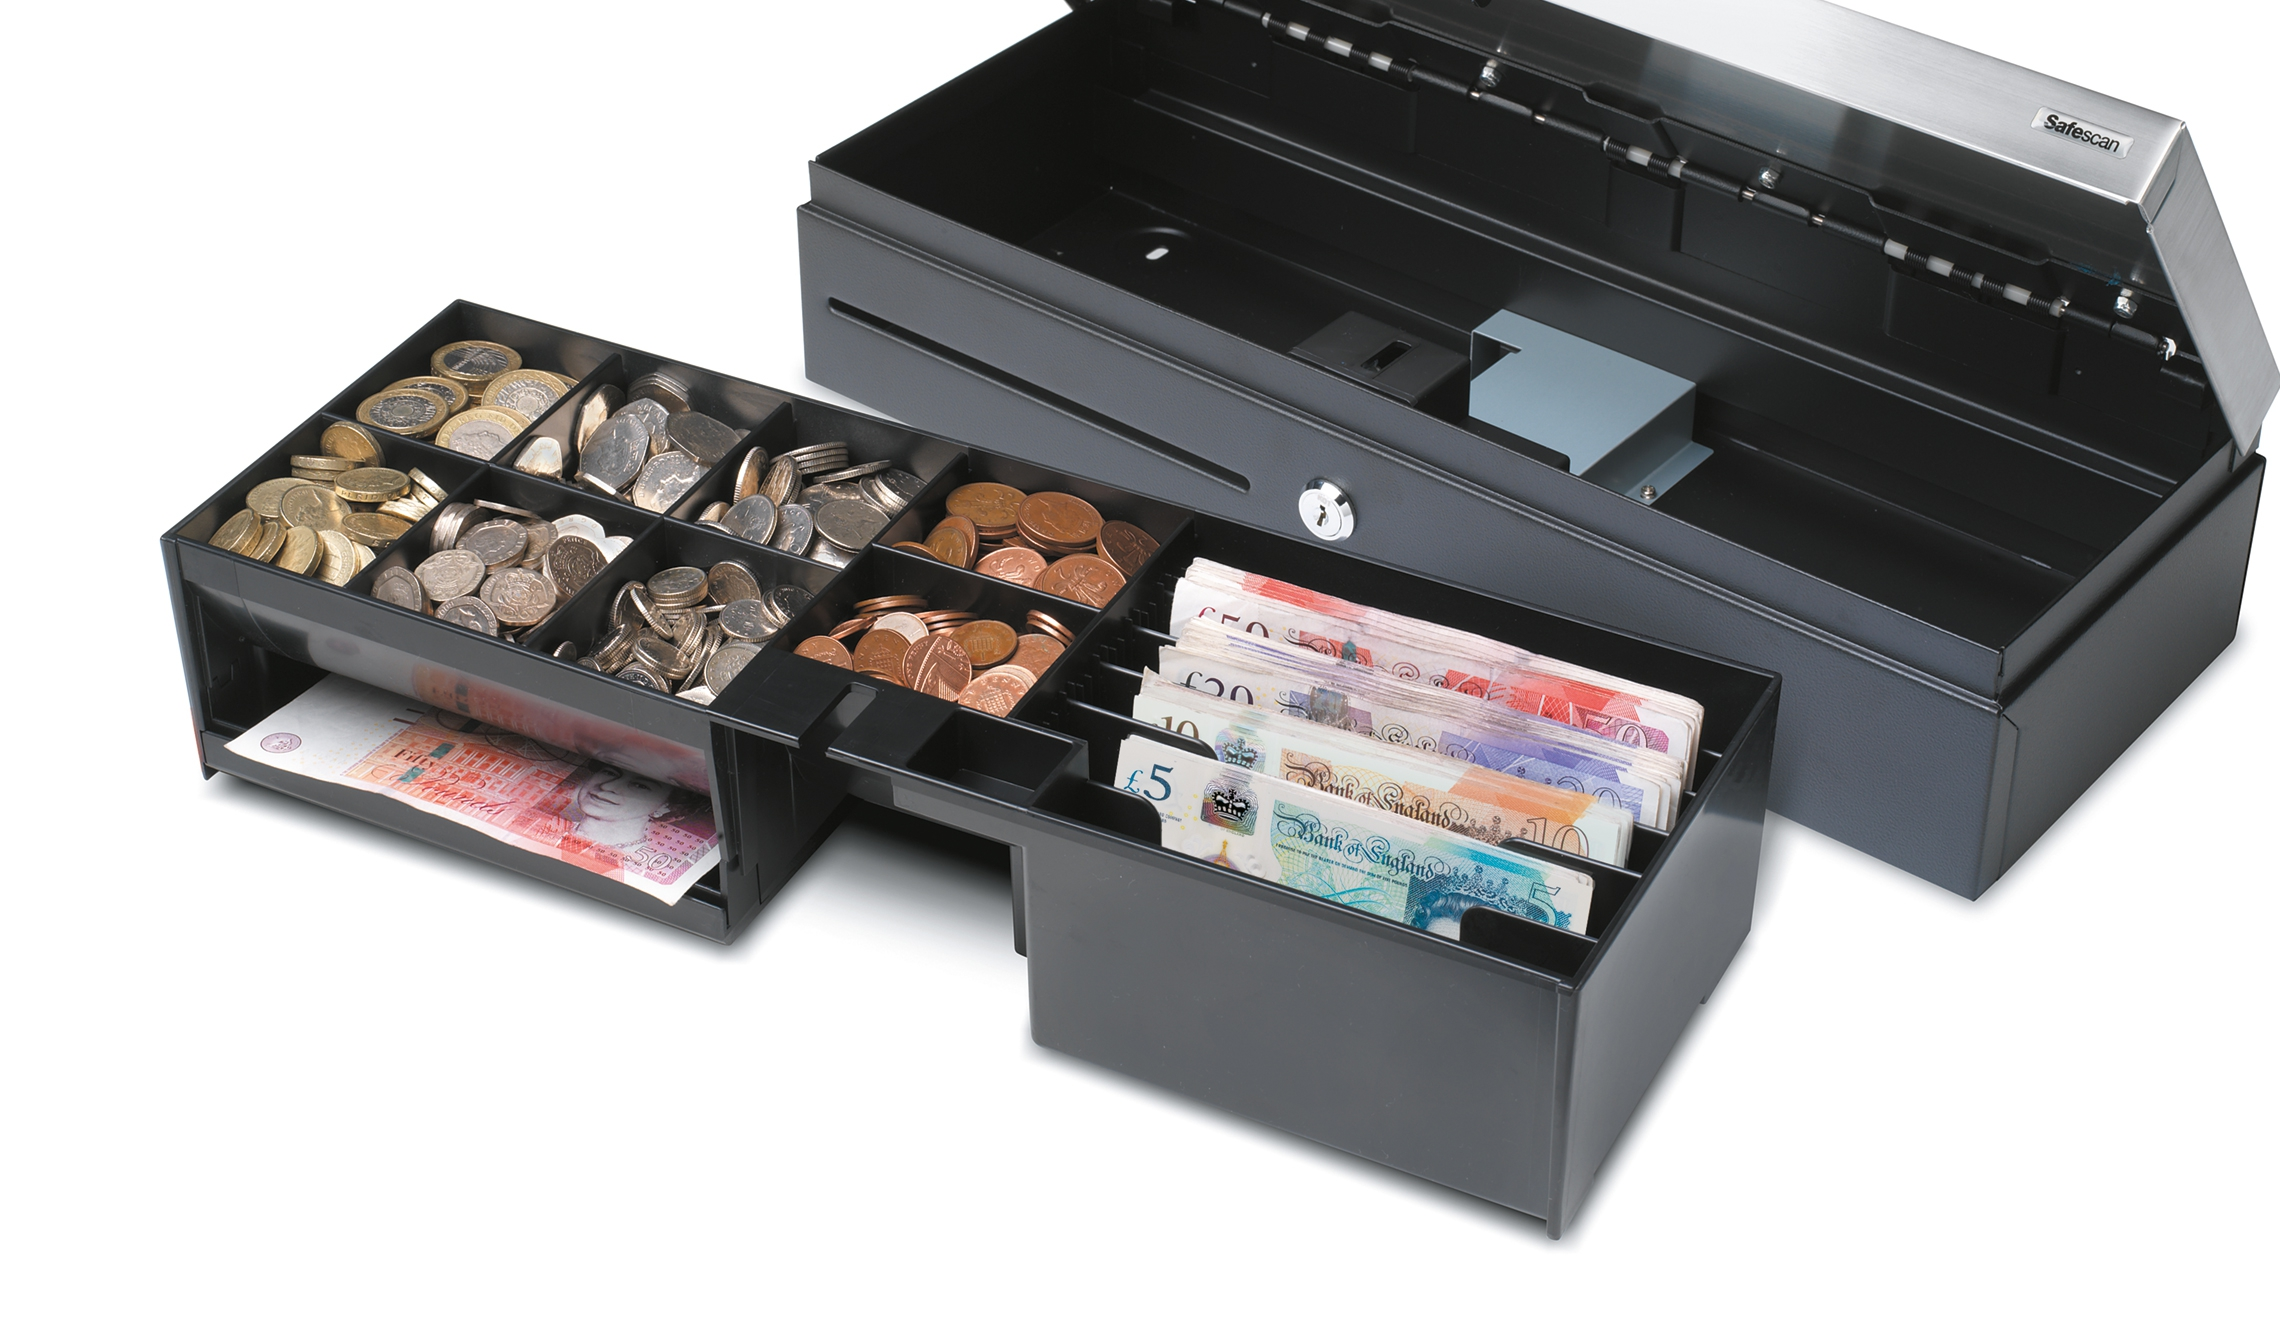 safescan-hd4617s-removable-tray